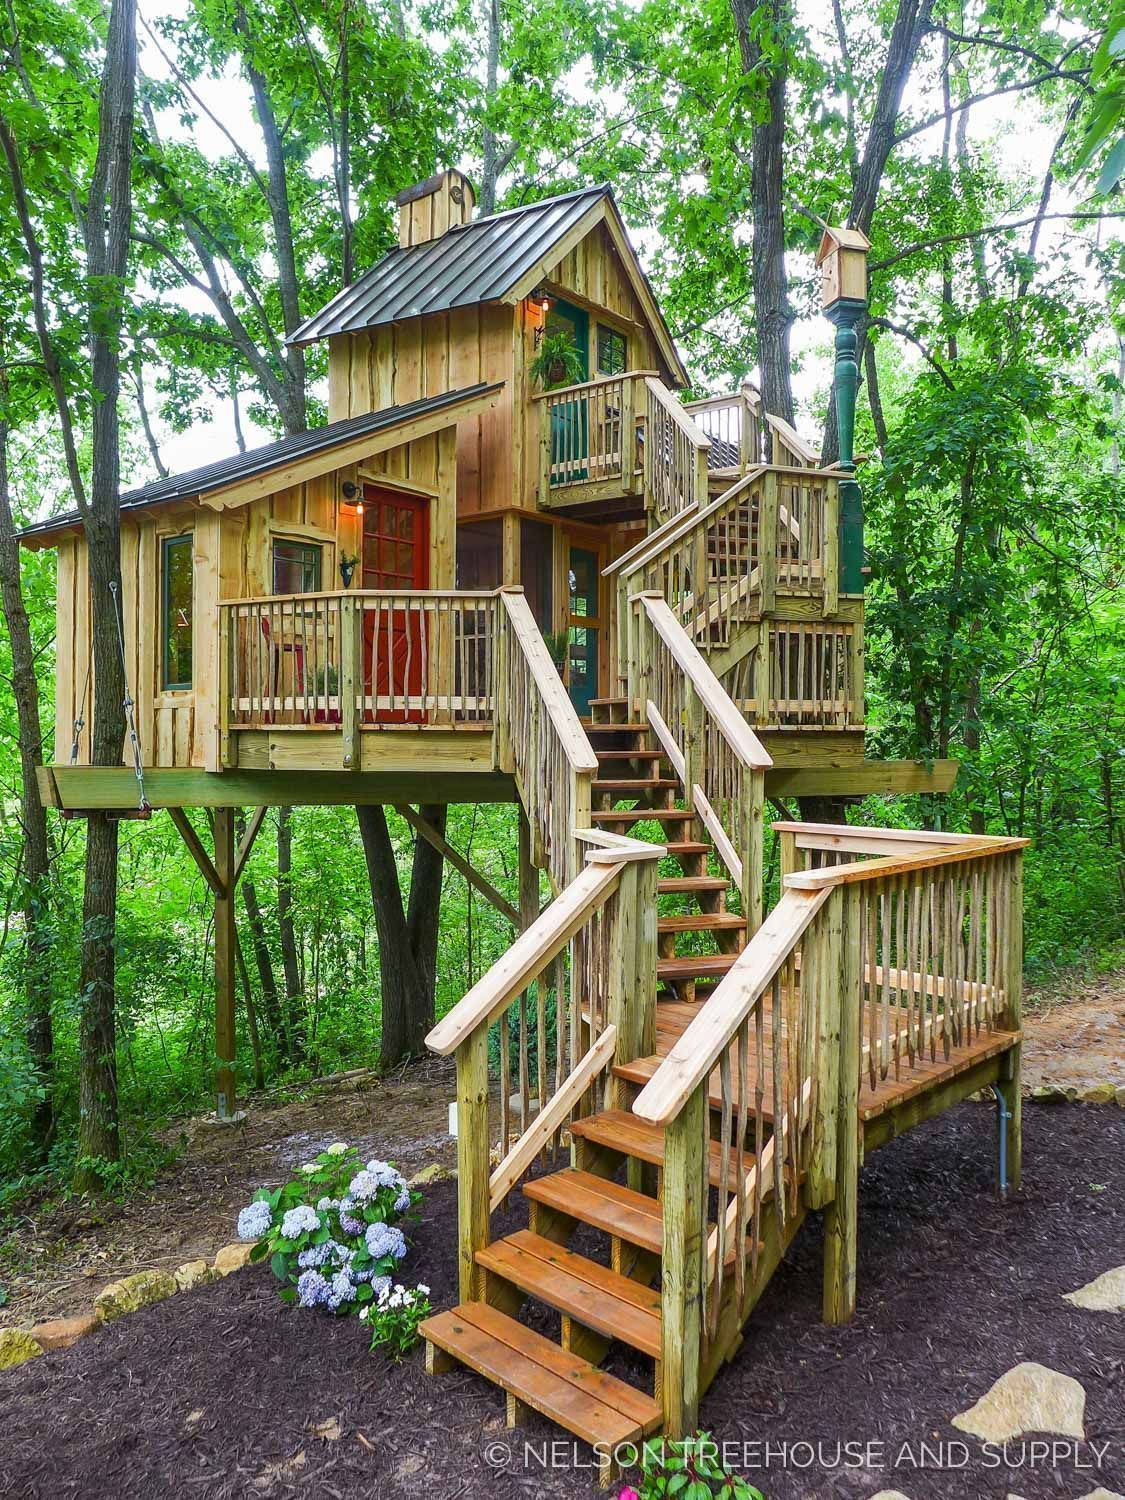 Cool Modern Simple Wooden House Designs To Be Inspired By: DIY Tree House Ideas & How To Build A Treehouse (For Your Inspiration)